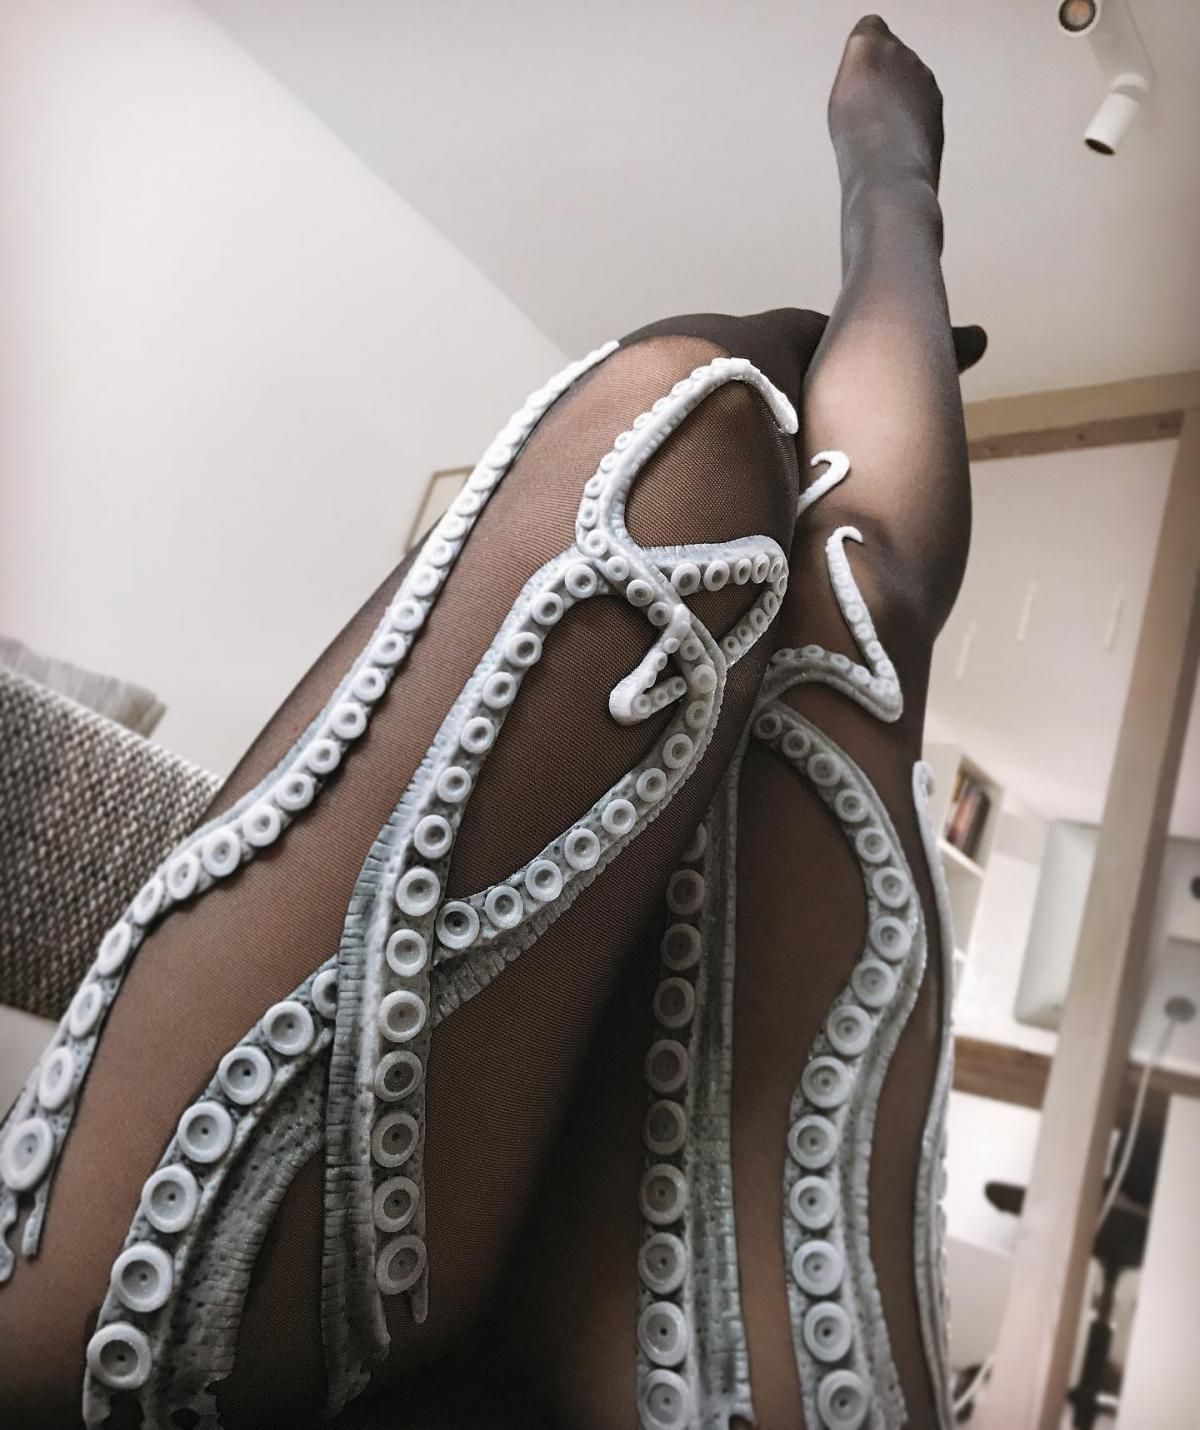 Tentacle Tights - Octopus Tights - Ursula Tights - Sea-Creature Tights